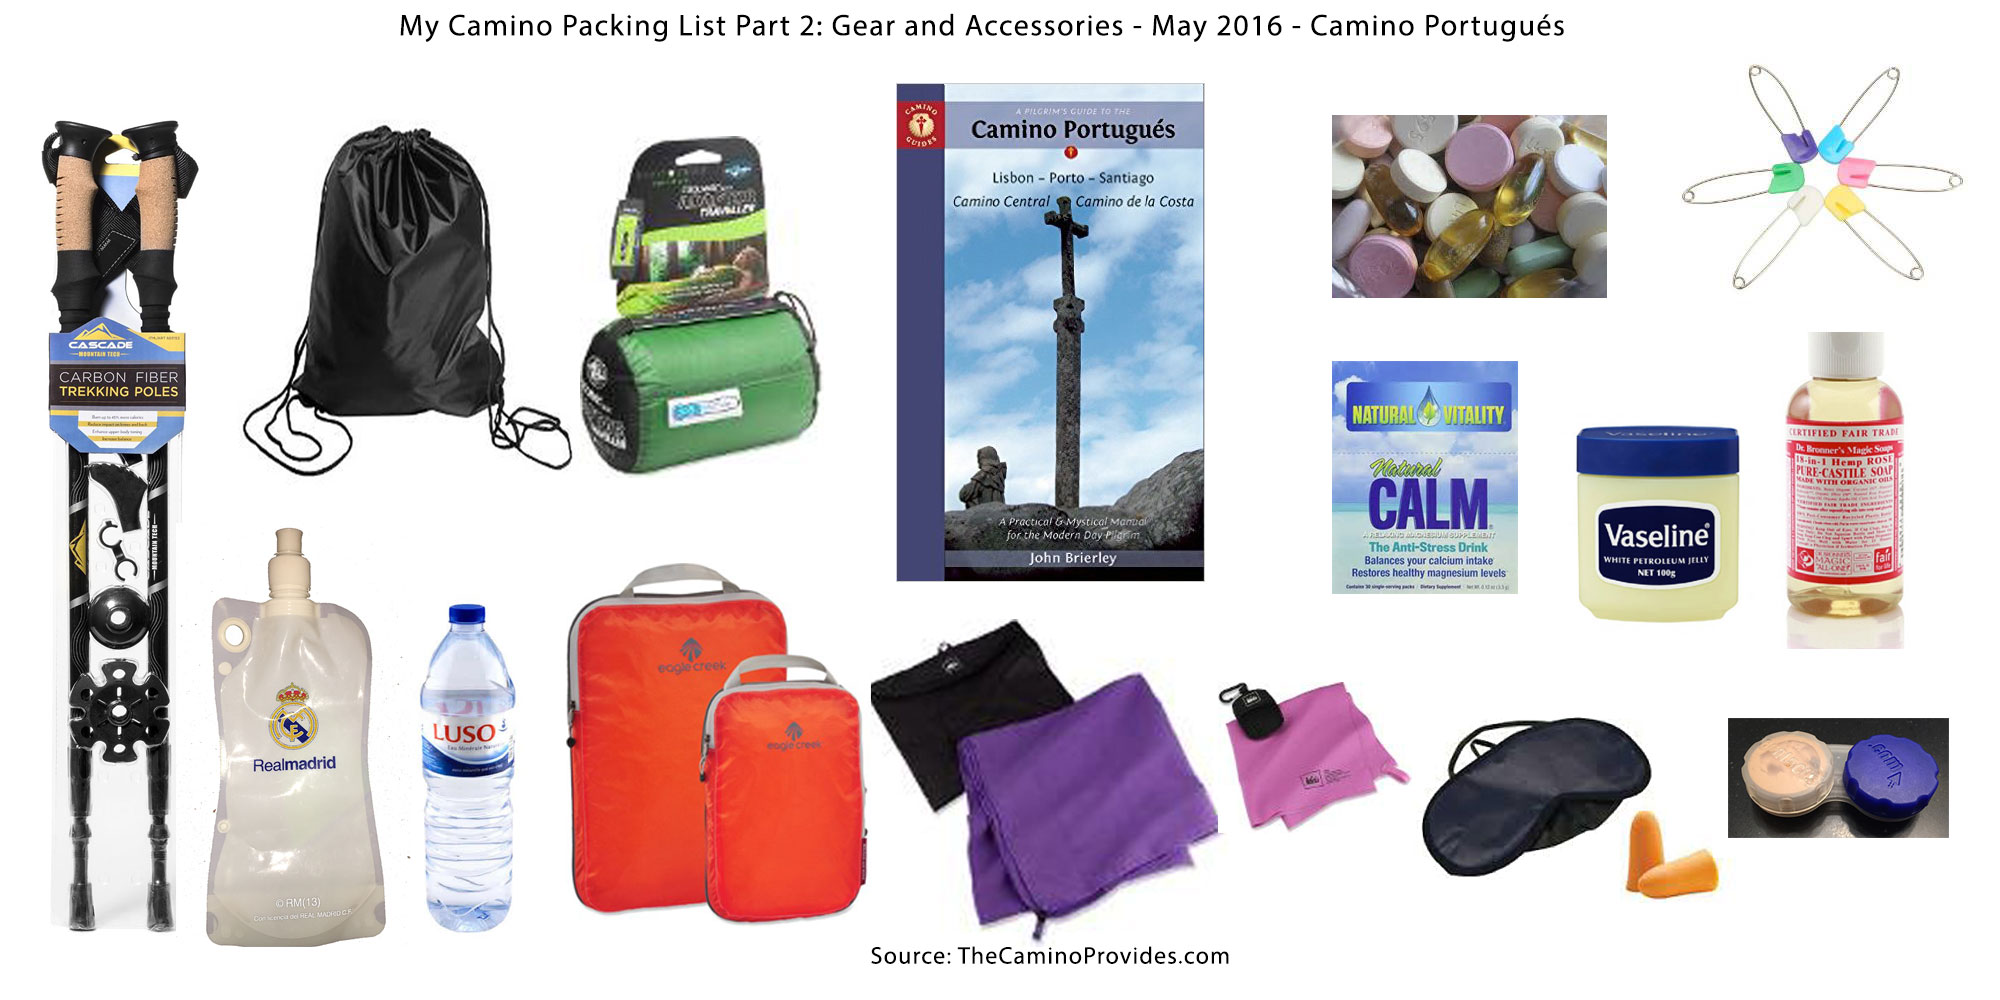 Camino Santiago Packing List Camino Packing List Part 2 Gear And Accessories The Camino Provides